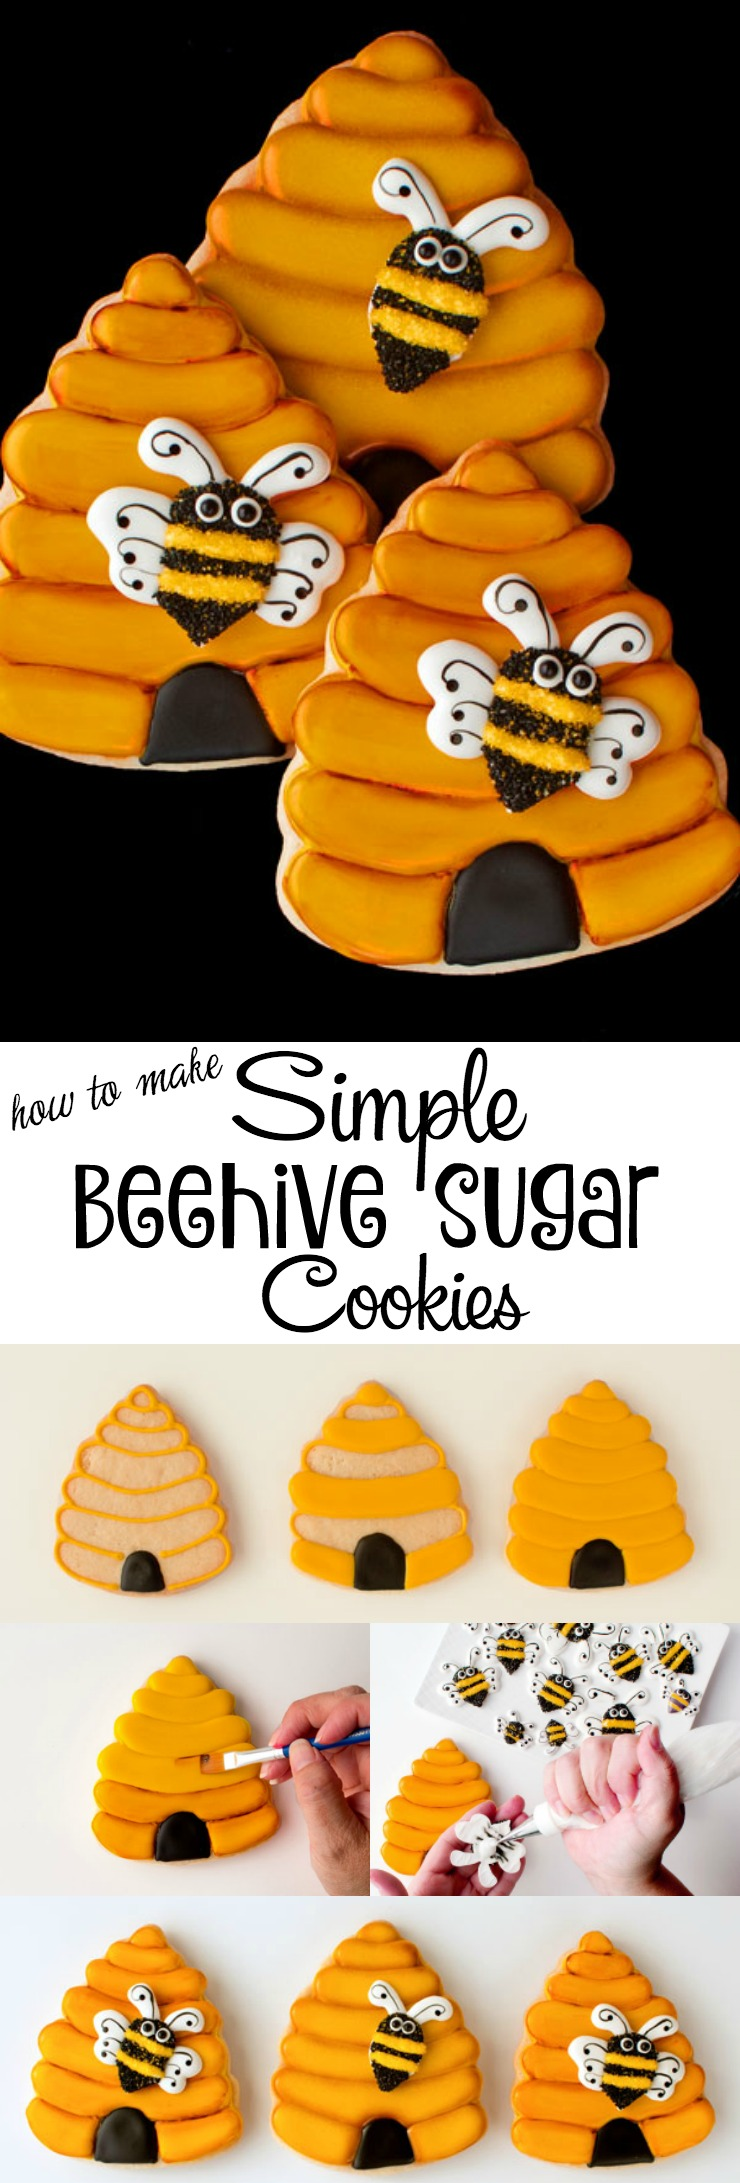 How to Make Simple Beehive Cookies | The Bearfoot Baker